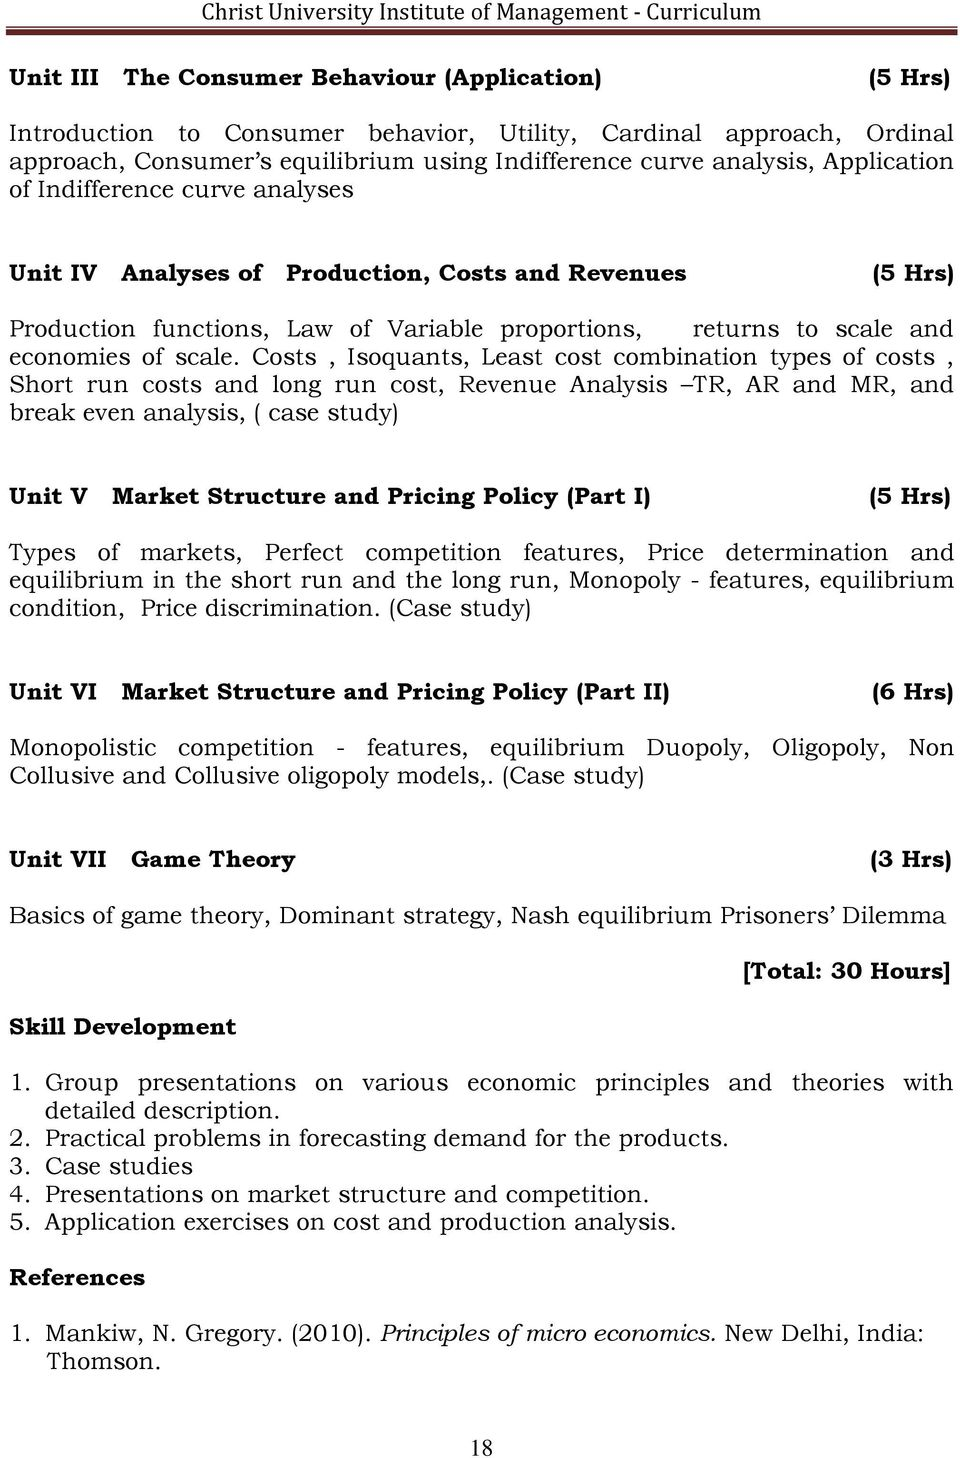 Costs, Isoquants, Least cost combination types of costs, Short run costs and long run cost, Revenue Analysis TR, AR and MR, and break even analysis, ( case study) Unit V Market Structure and Pricing